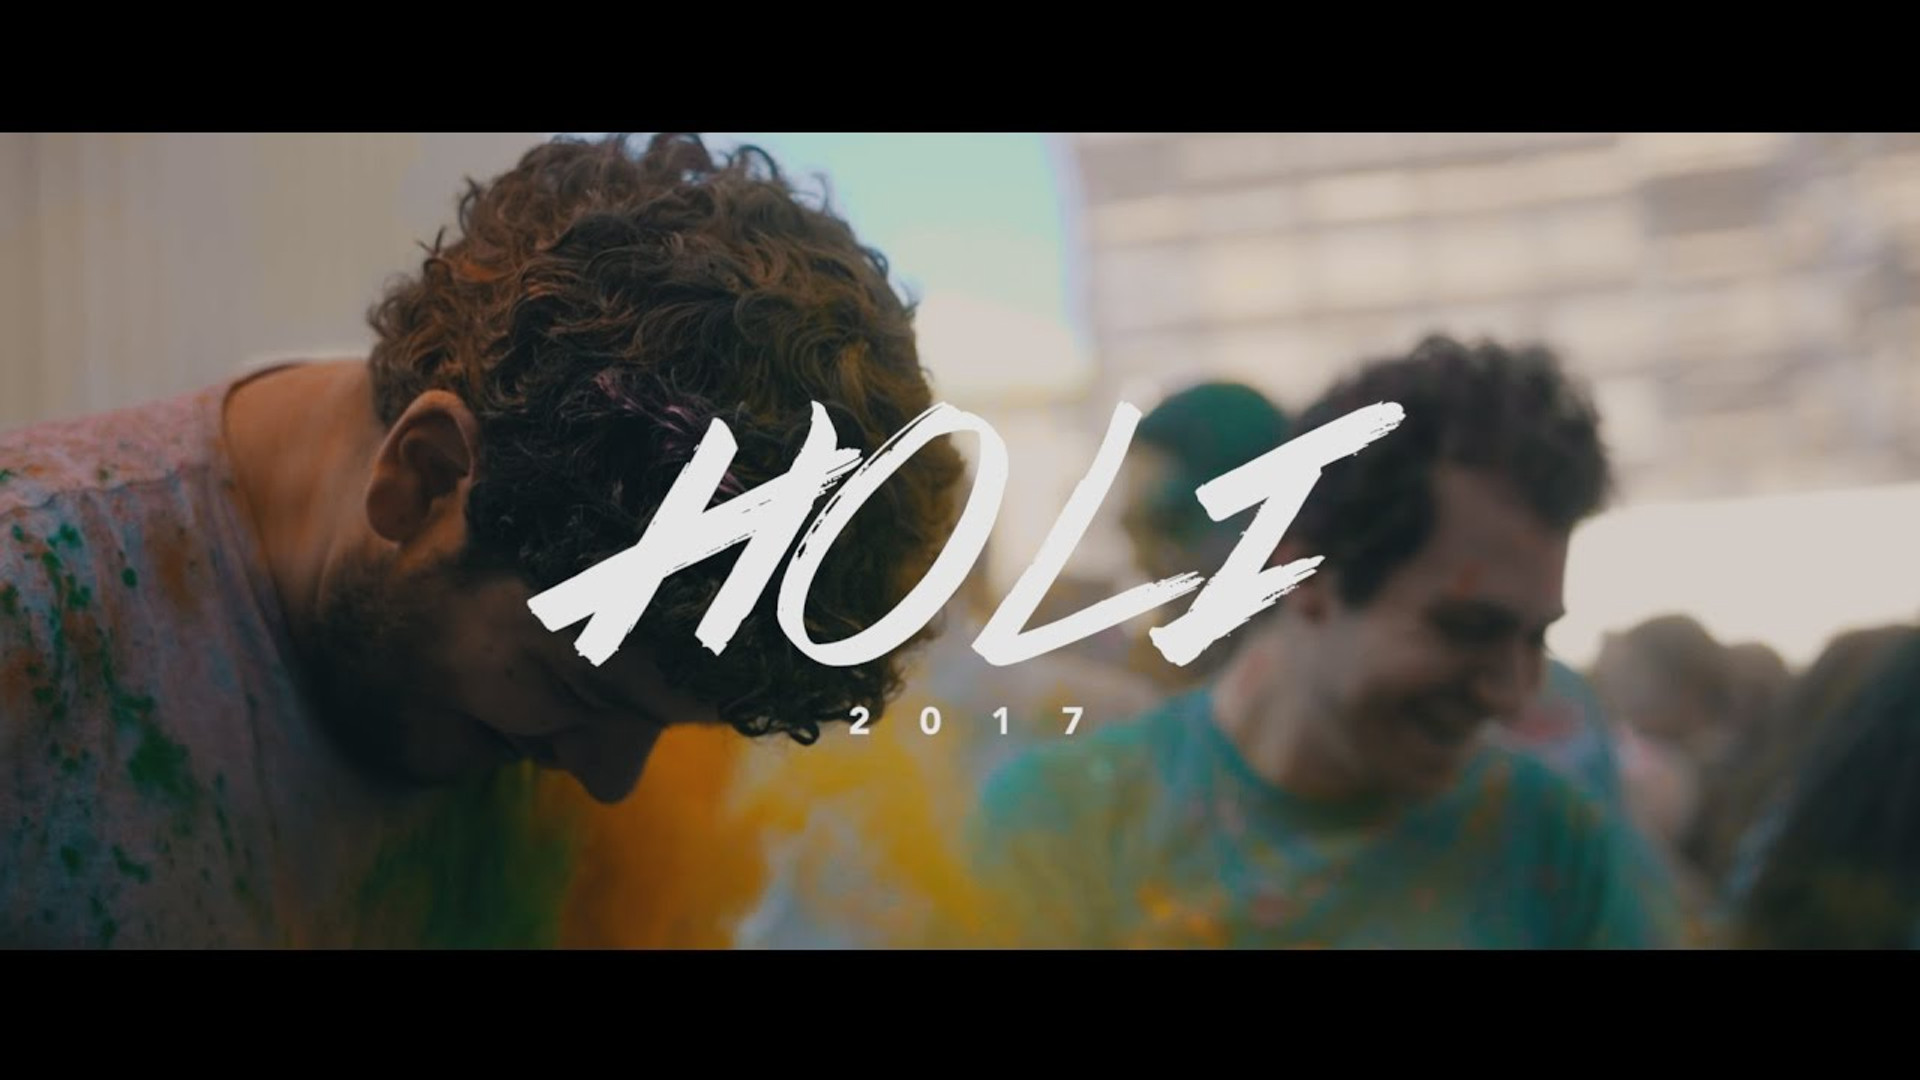 HOLI 2017 | Columbia University | GH4/Twixtor/VisionColor LUTs